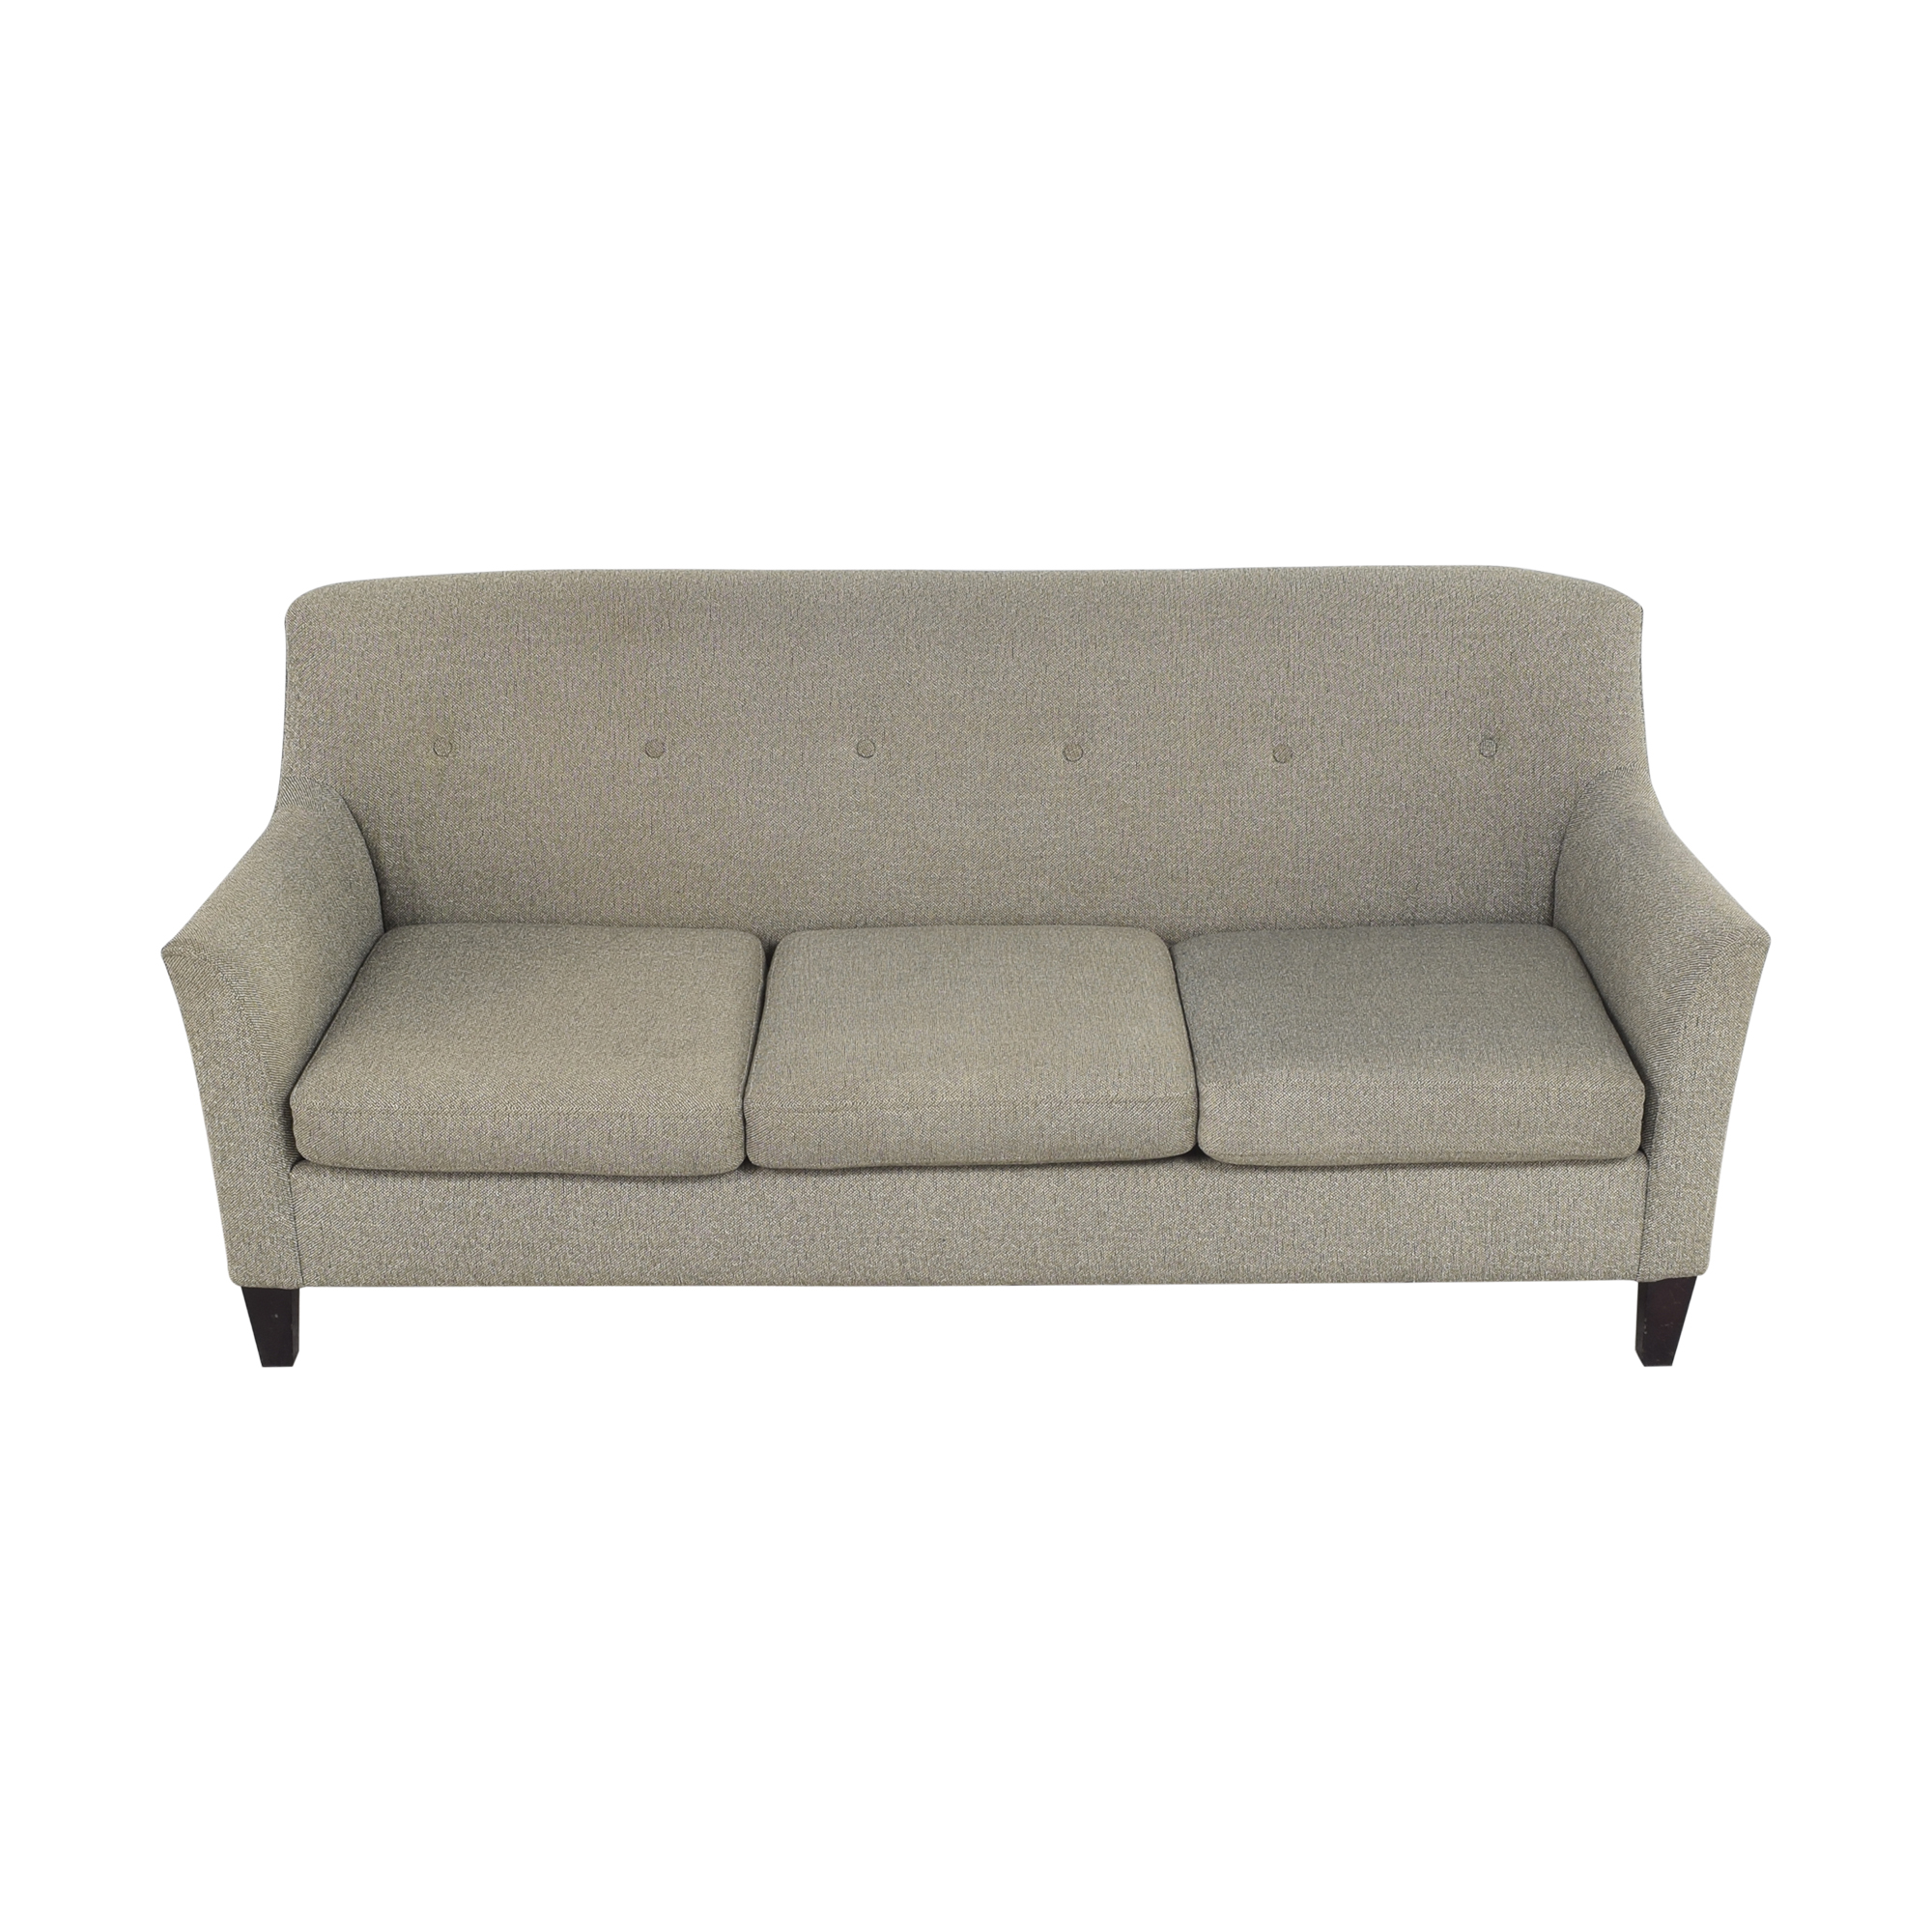 shop Max Home Max Home Better By Design Mid Century Modern Sofa online